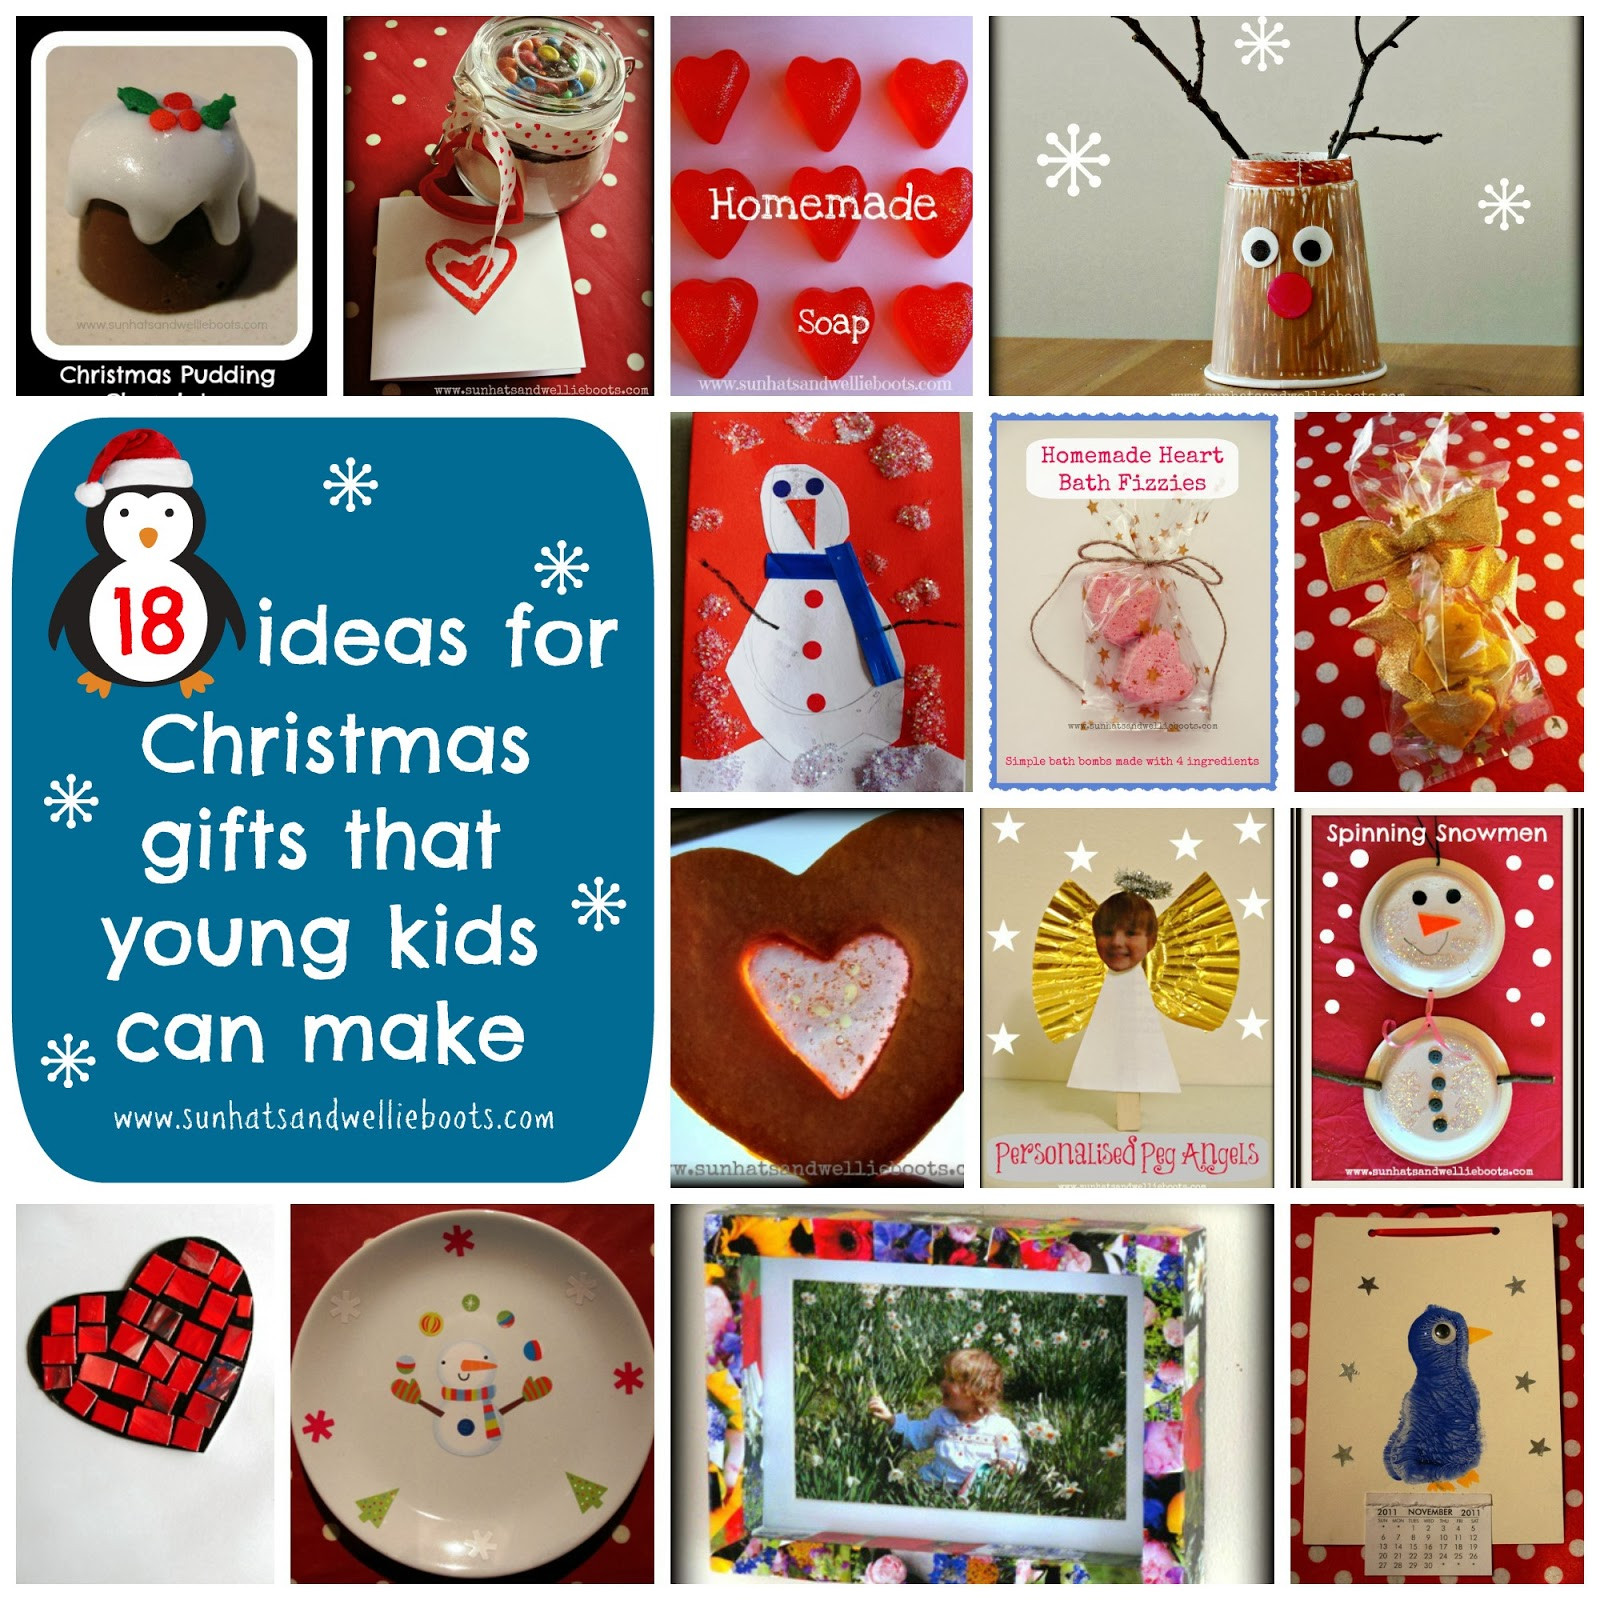 Toddler Made Christmas Gifts  Sun Hats & Wellie Boots 18 Homemade Christmas Gifts That